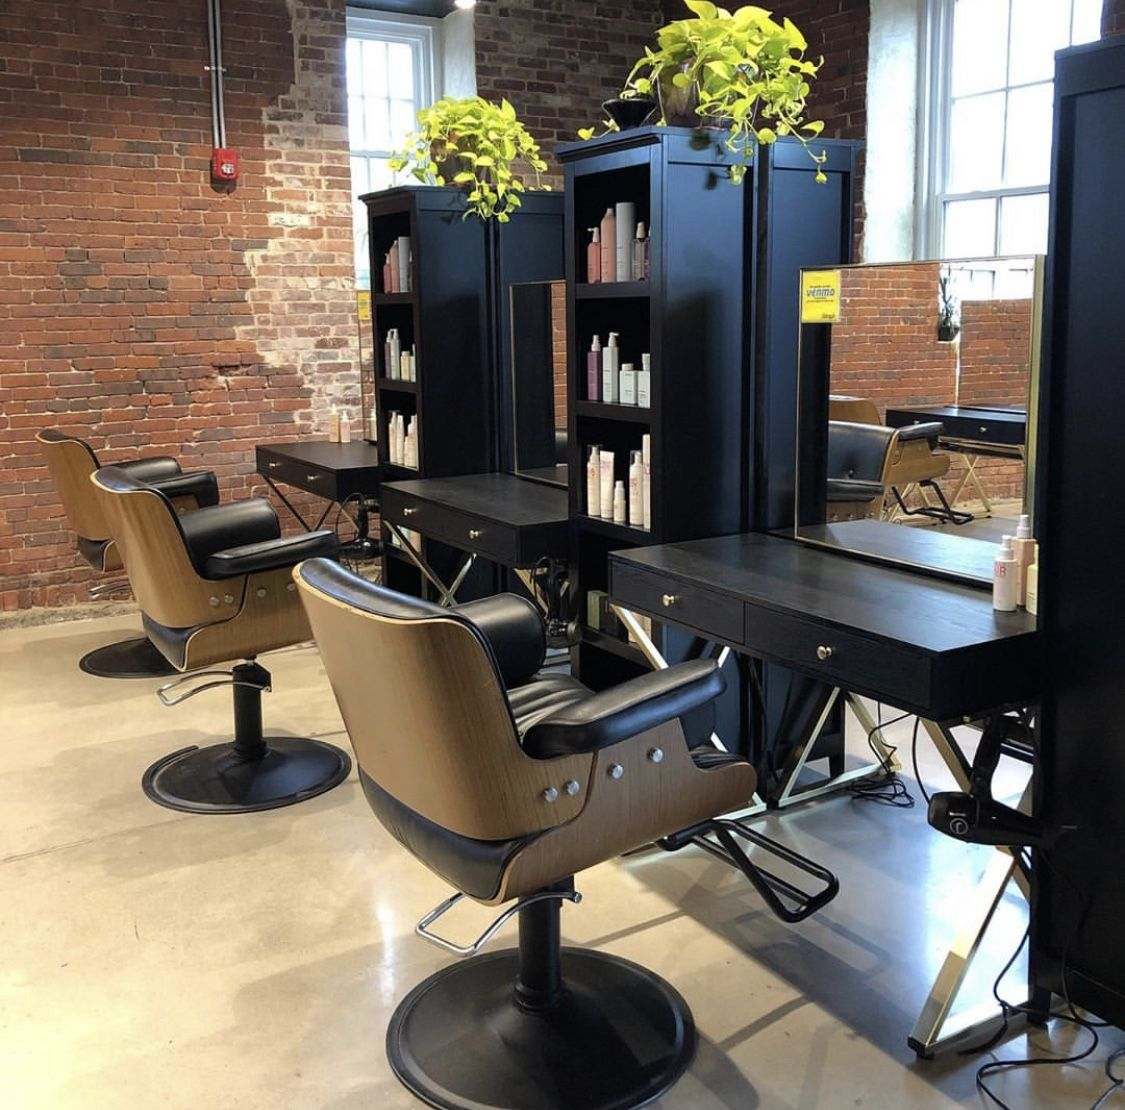 Spotted Kona Styling Chairs At The Beautifully Rustic Oomph Salon